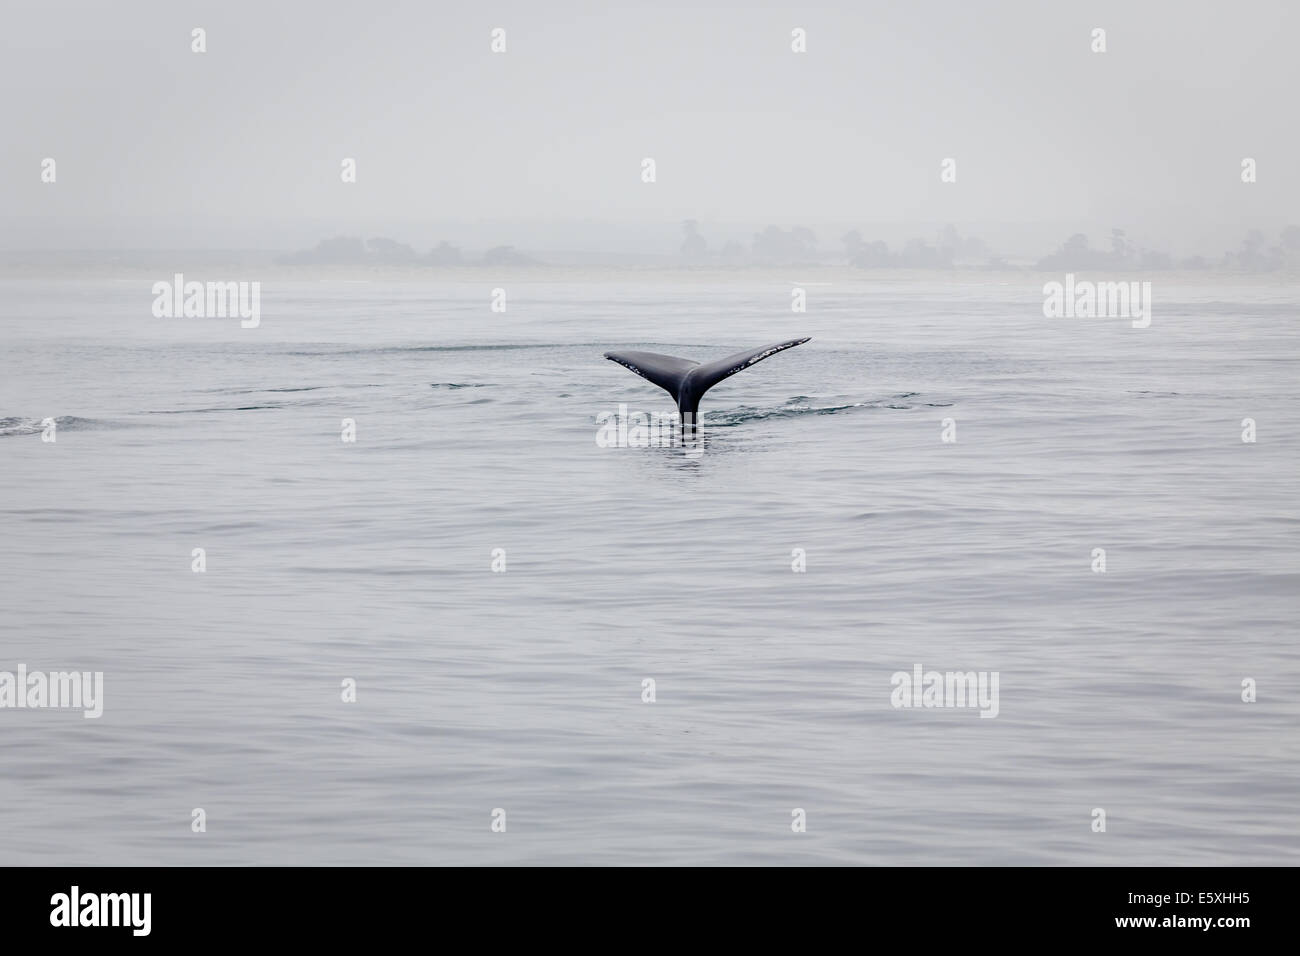 Lobtailing humpback whale's tail raises out of ocean in morning mist - Stock Image